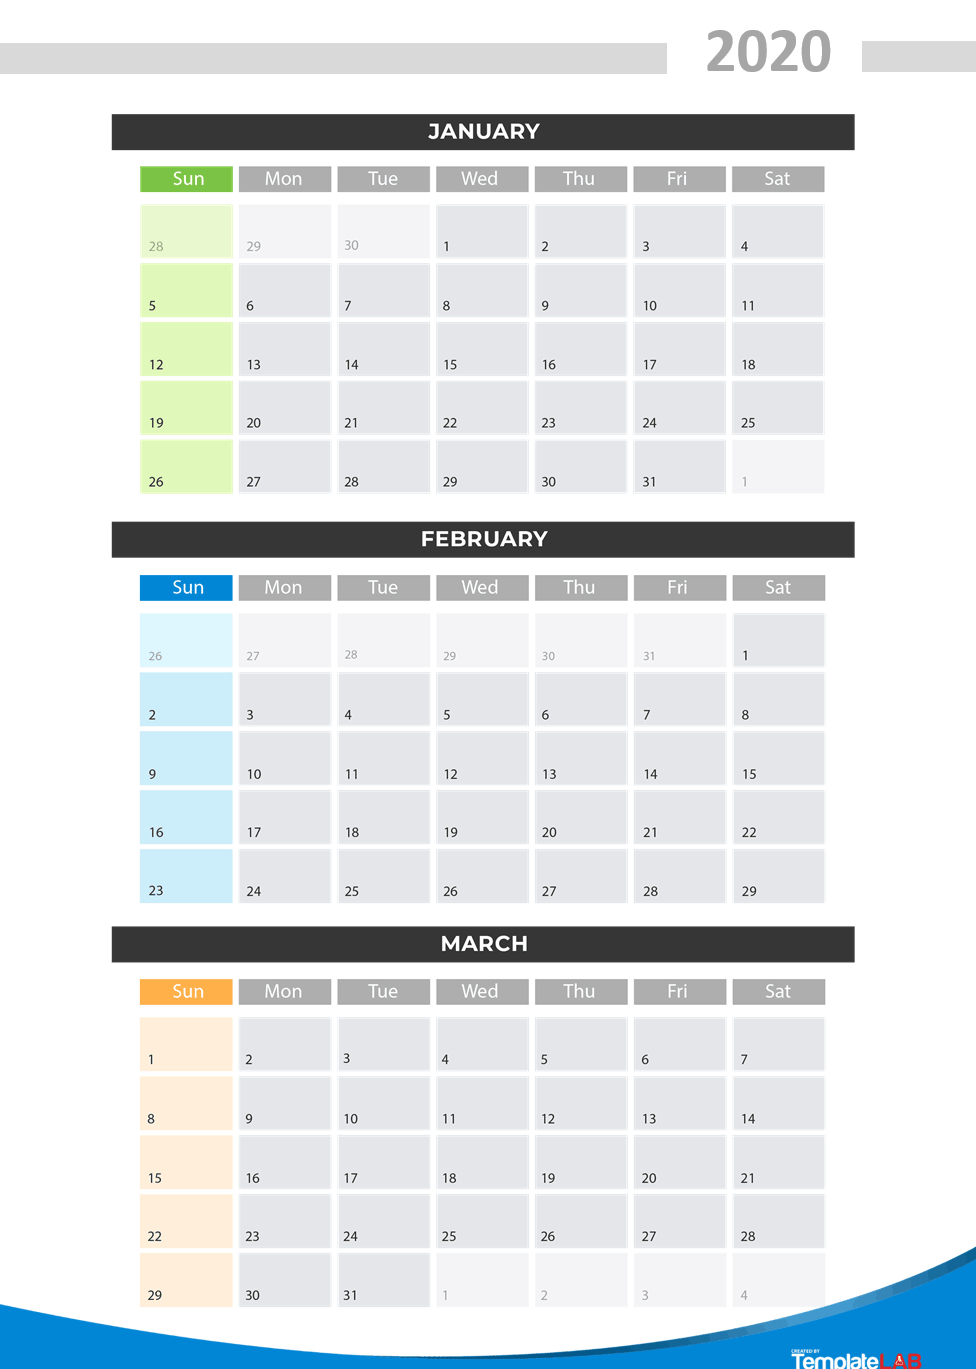 [%2020 Printable Calendars [Monthly, With Holidays, Yearly] ᐅ|Blank Quarterly Calendar Template|Blank Quarterly Calendar Template%]